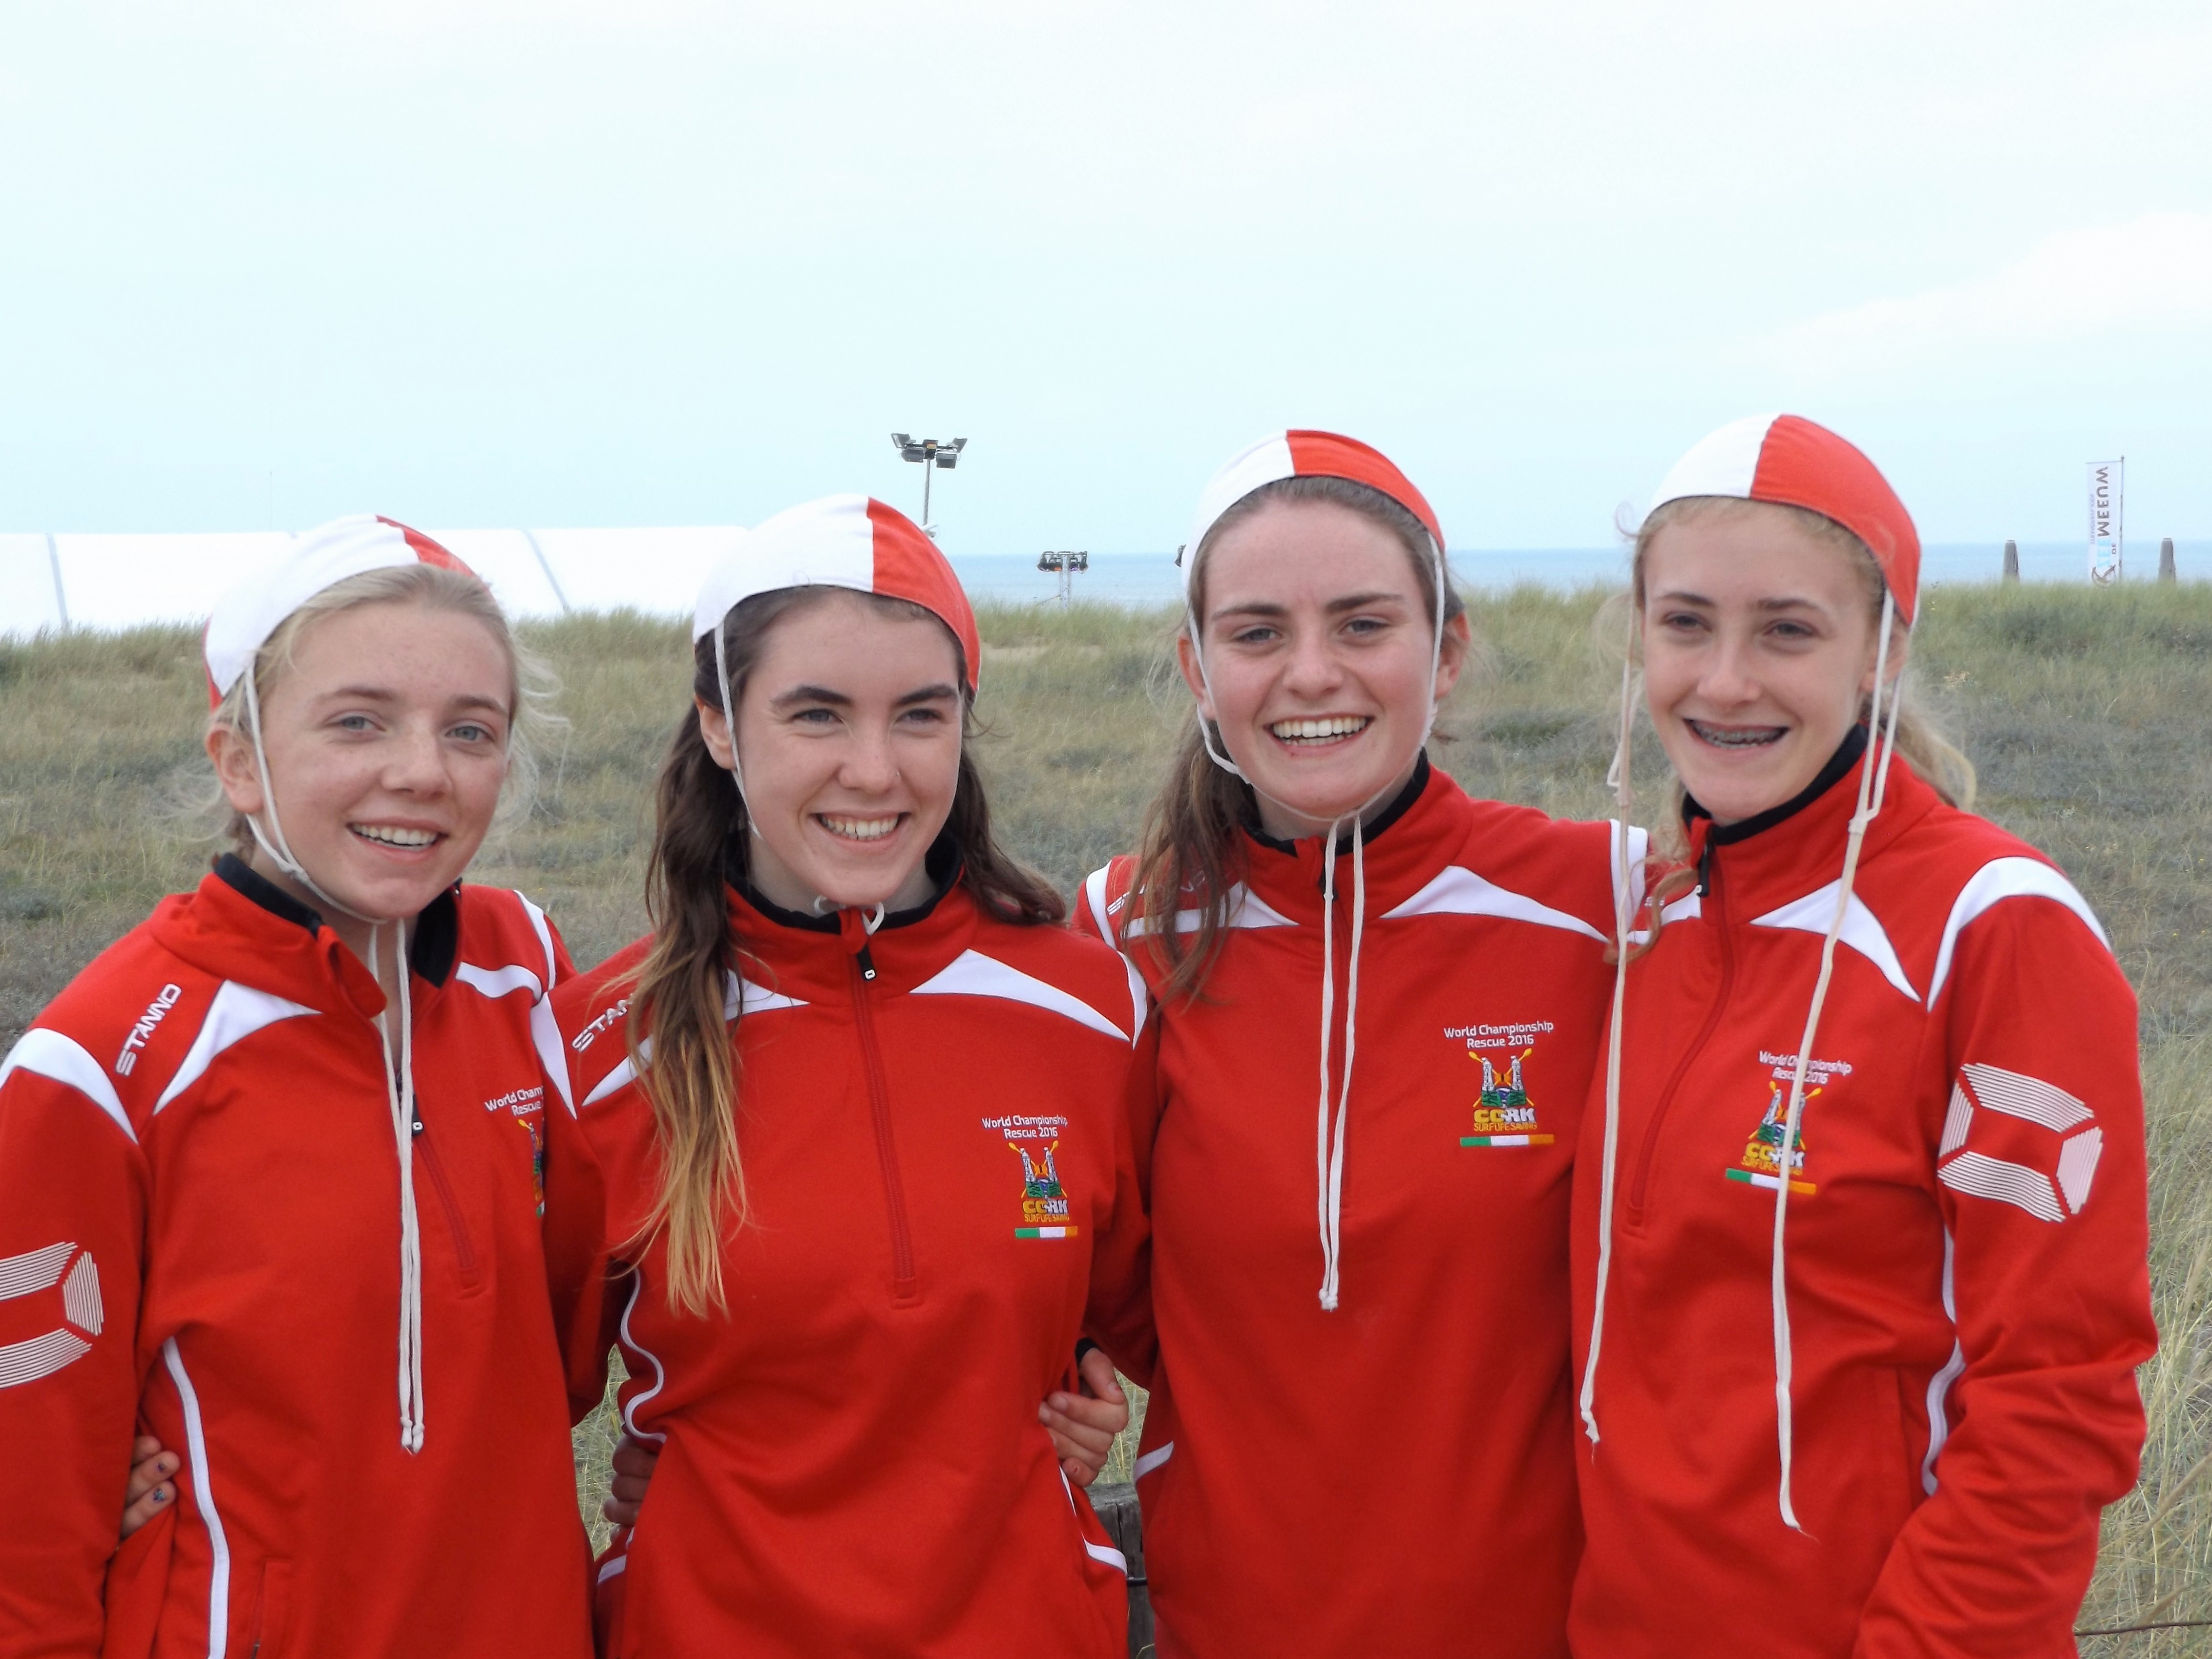 Aideen Butler, Sally Naughton, Moira Barrett and Laura Nicholson from Clonakilty - Girls Beach Sprint Relay Team that finished 11th at the World Championships in Holland (Image credit: Gail Butler)